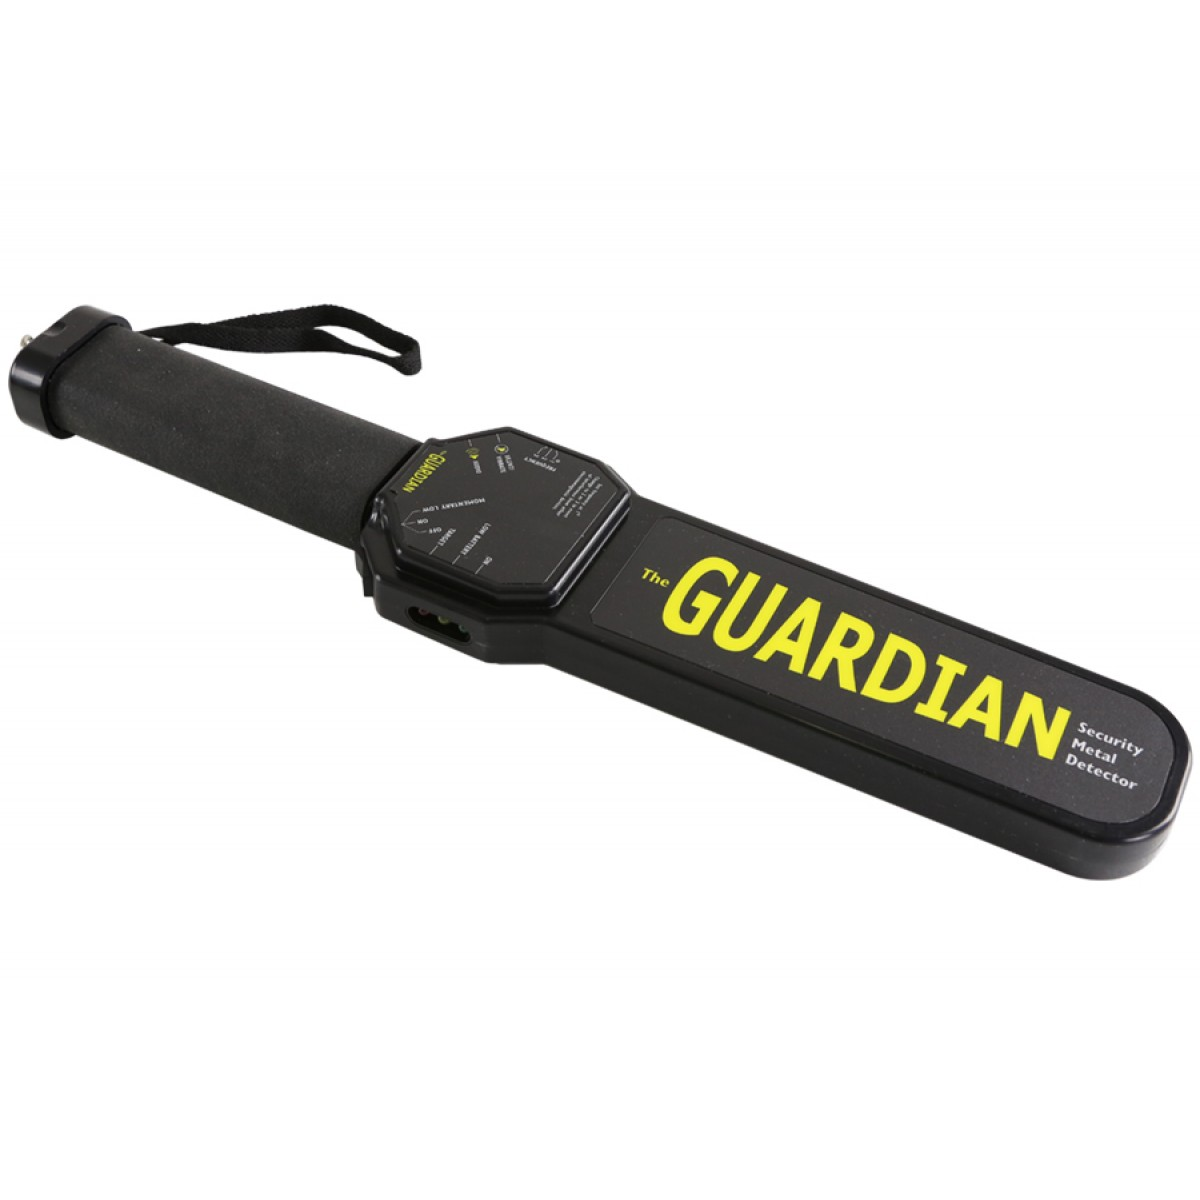 Hand Held Gold Tester : Bounty hunter guardian hand held security wand for sale